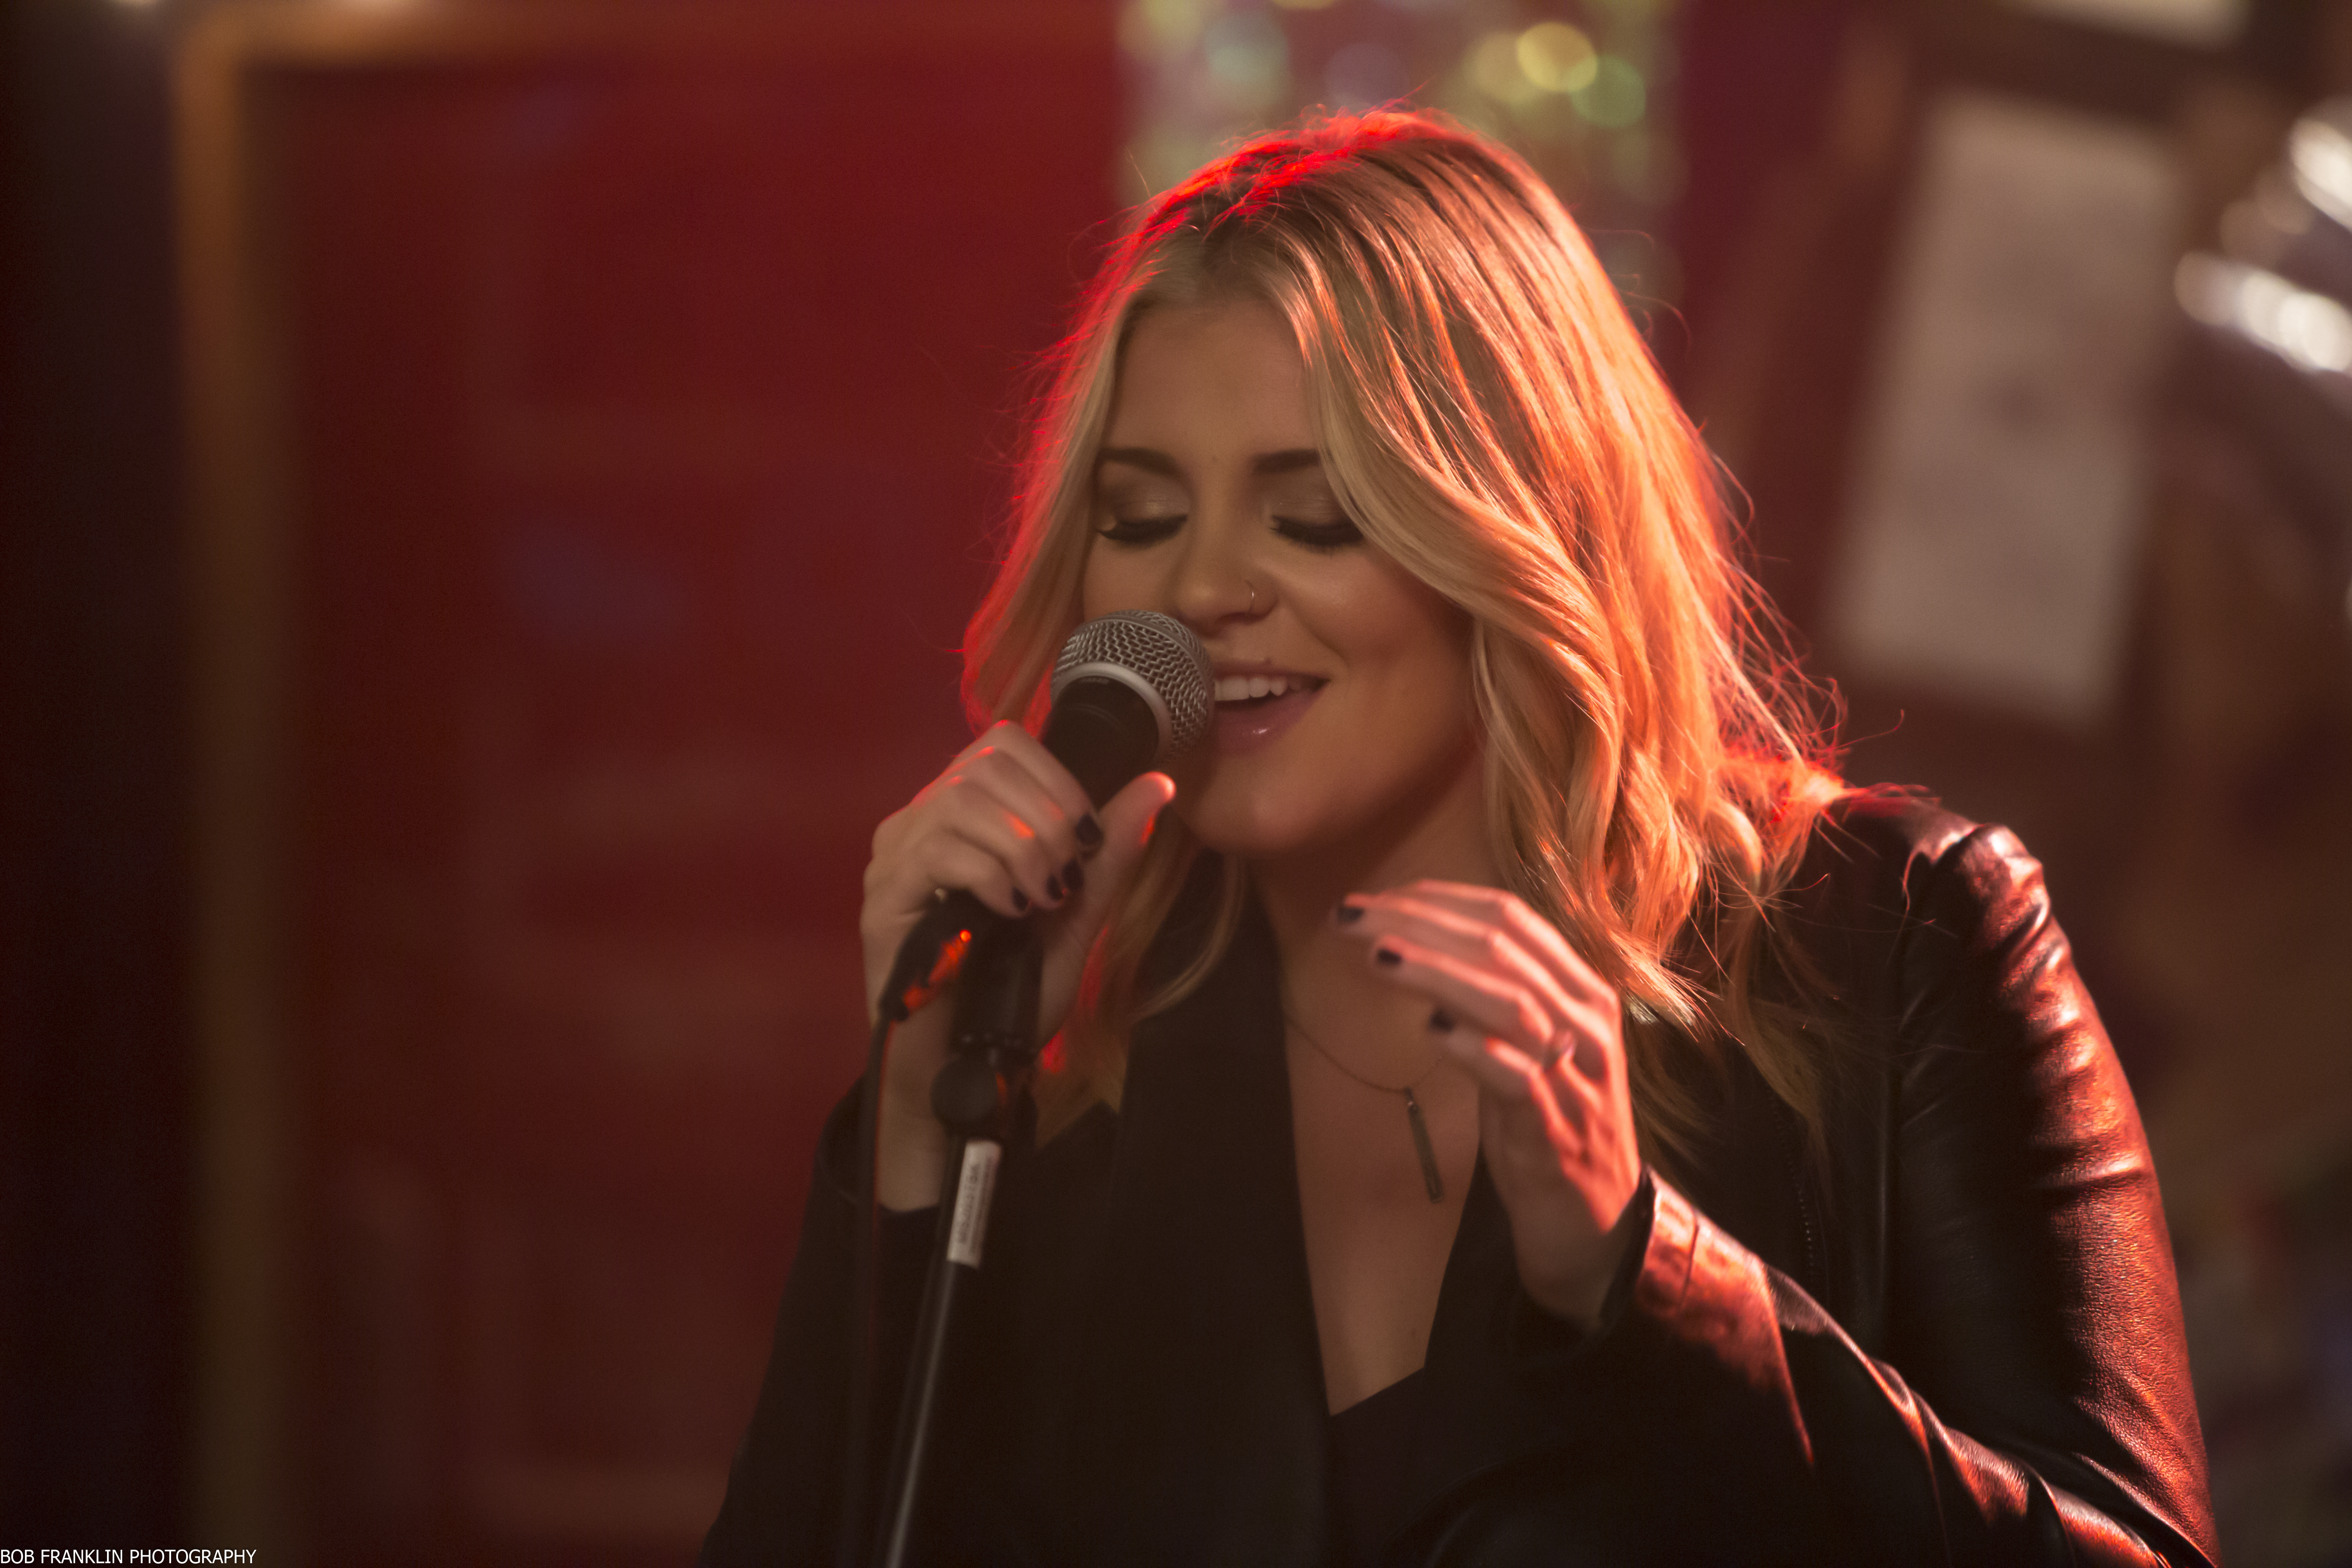 'Road Less Traveled' Starring Lauren Alaina to Make Television Premiere on CMT